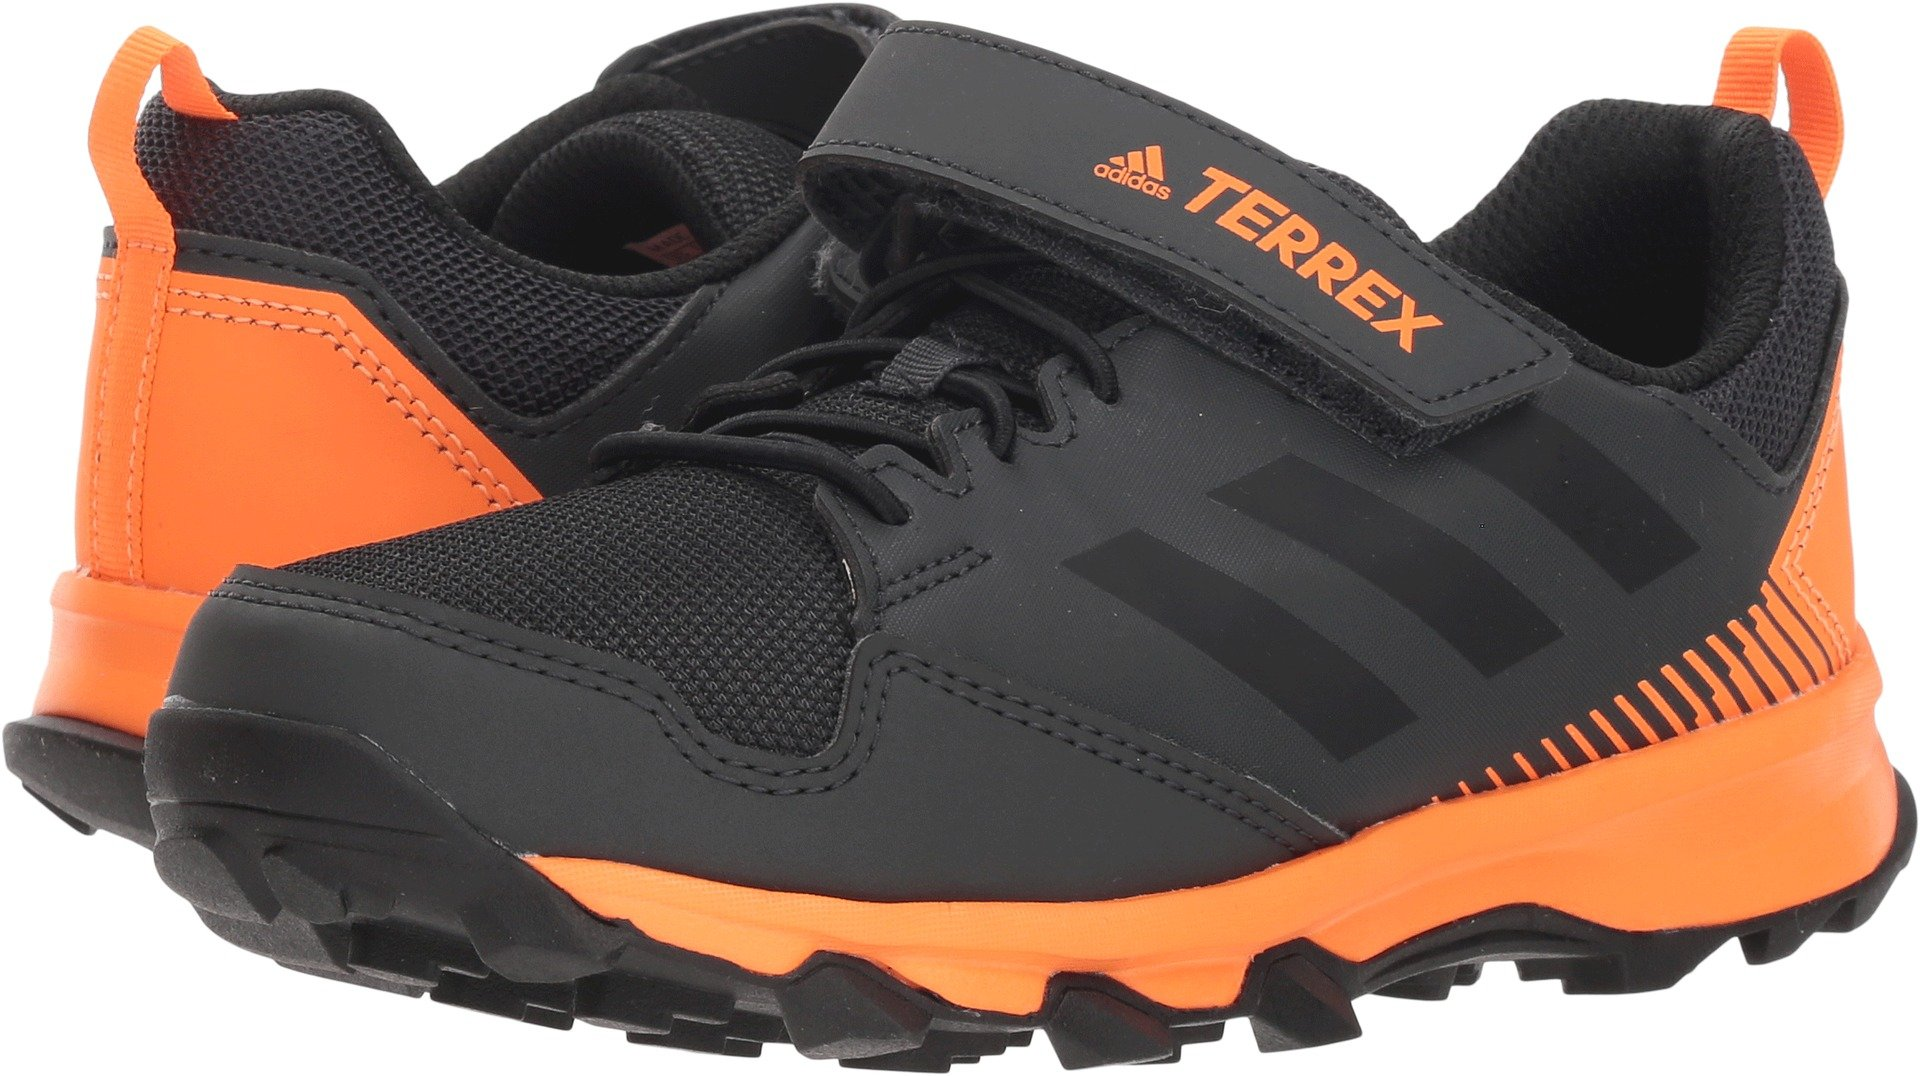 adidas Outdoor Kids Boy's Terrex Tracerocker CF (Little Kid/Big Kid) Black/Black/Black 4.5 M US Big Kid M